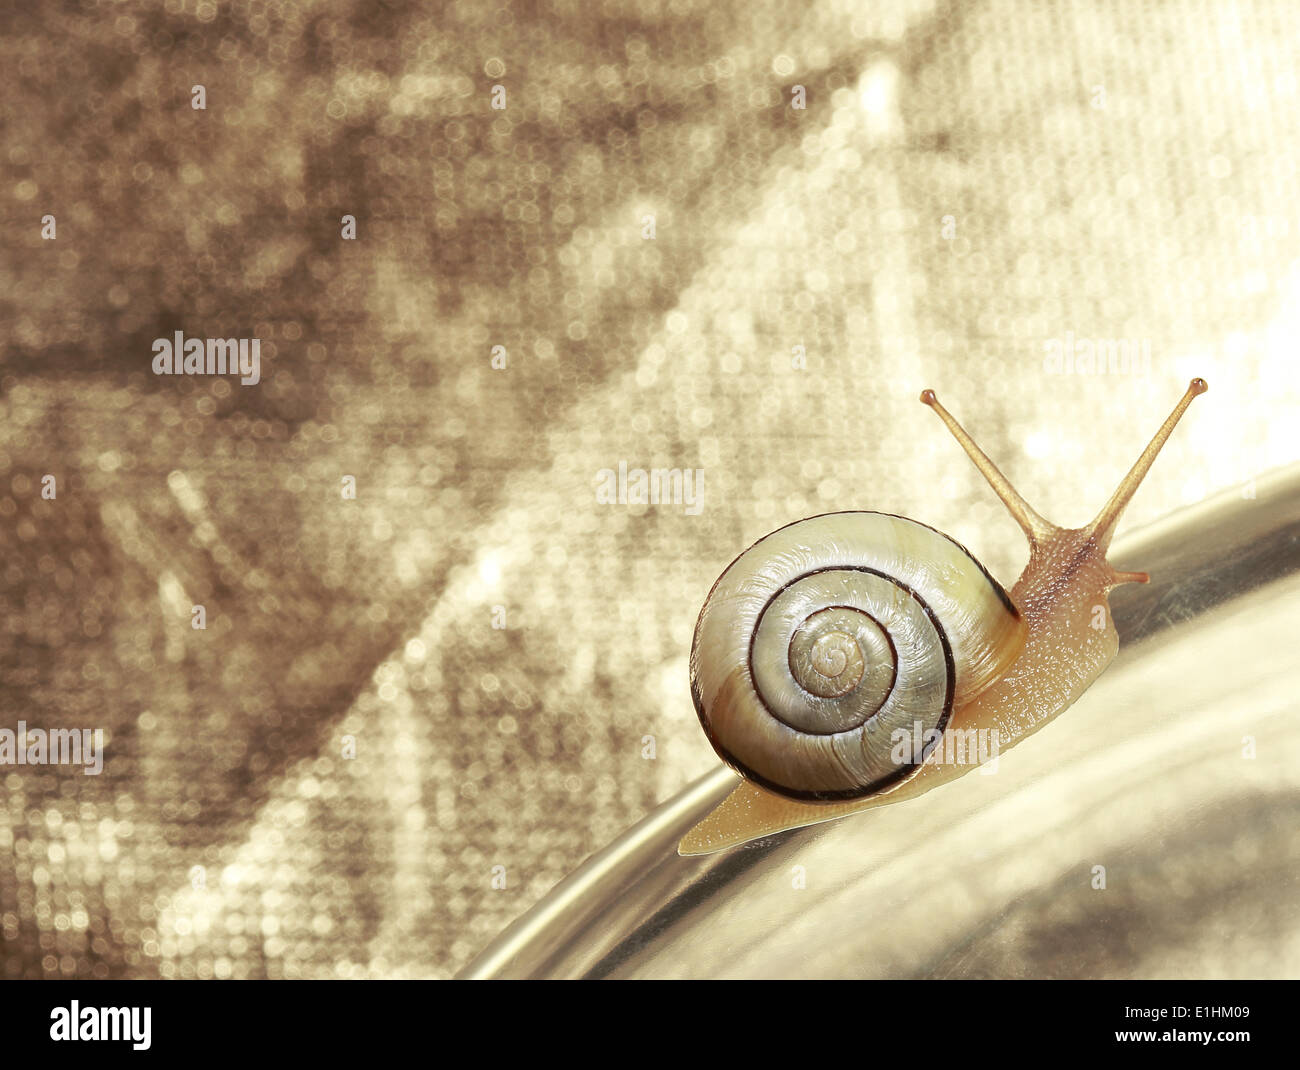 Common Garden Banded Snail Crawling on Metallic Background Stock Photo